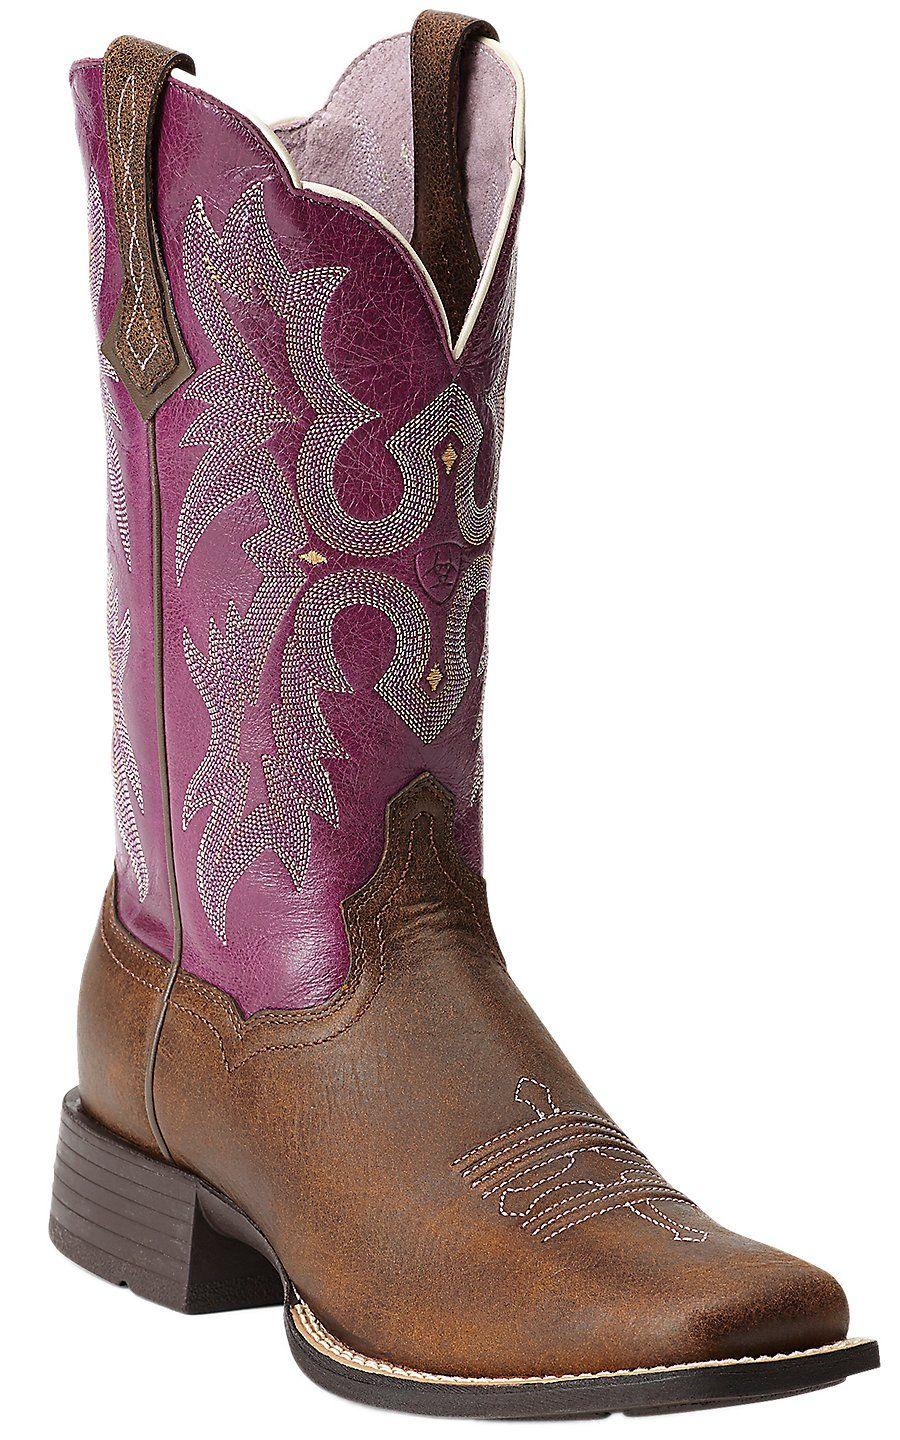 Ariat 174 Tombstone 174 Women S Vintage Bomber Brown With Plum